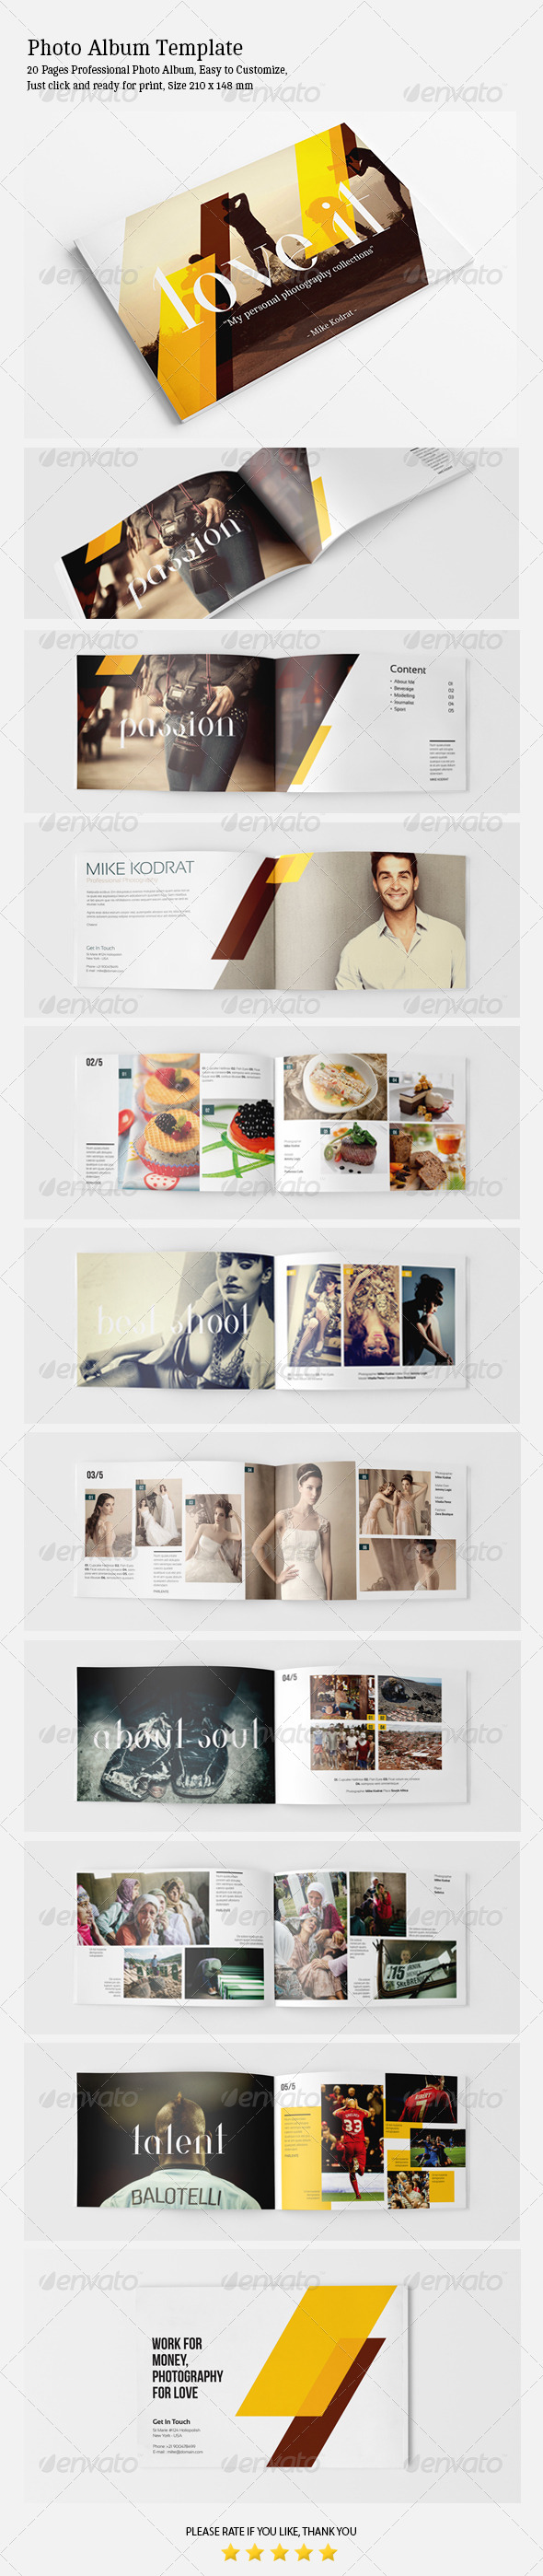 Photo Album Template - Photo Albums Print Templates